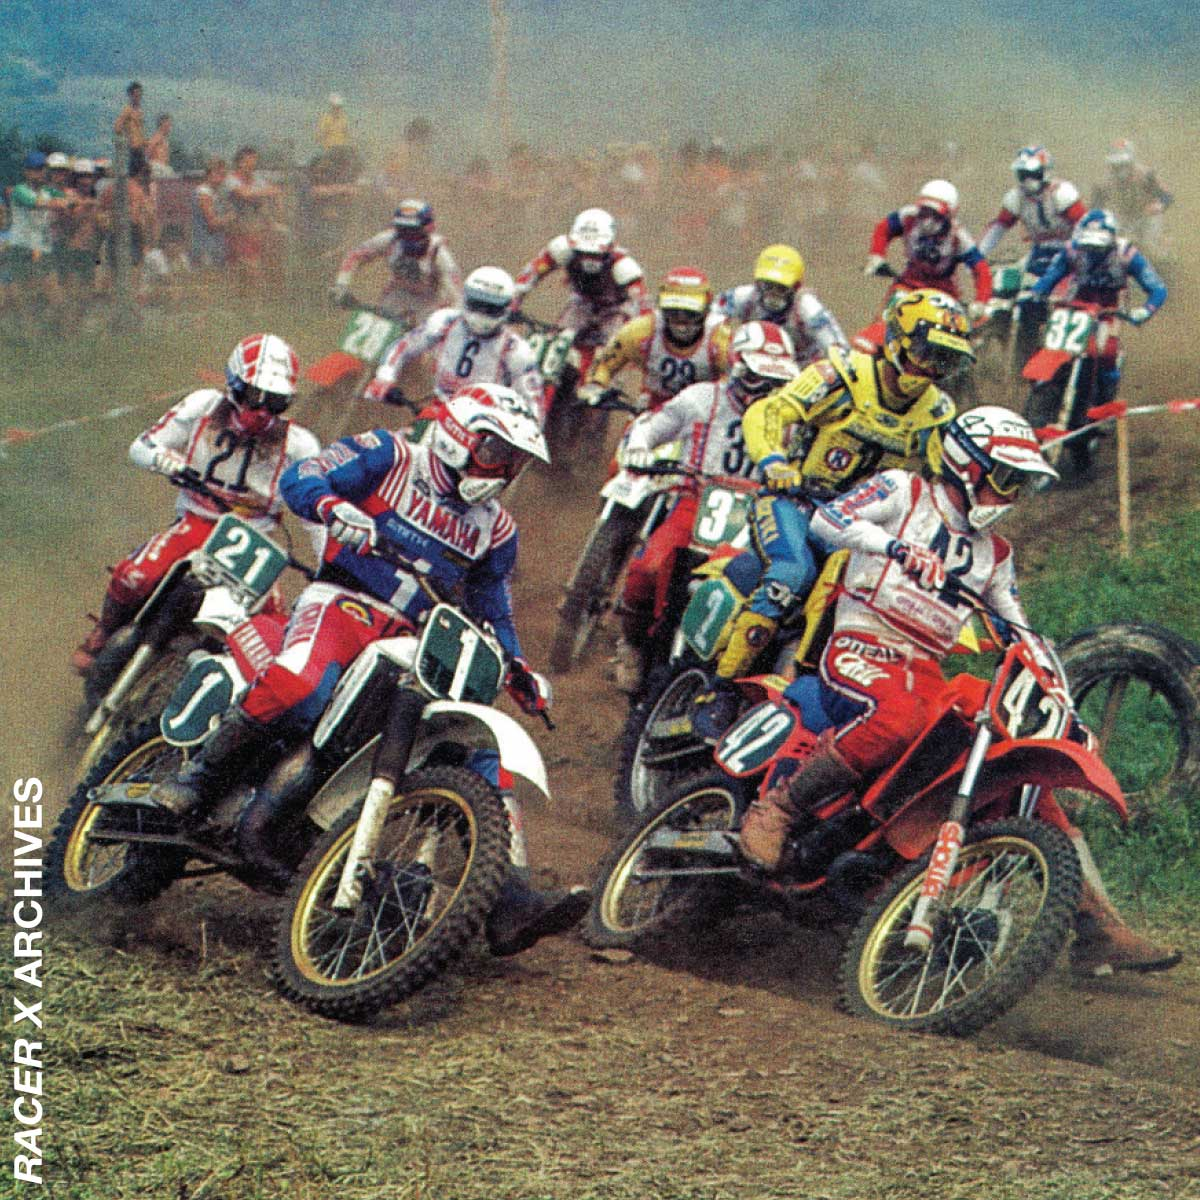 Brian Myerscough (42) battles with Danny LaPorte (1) in 1983